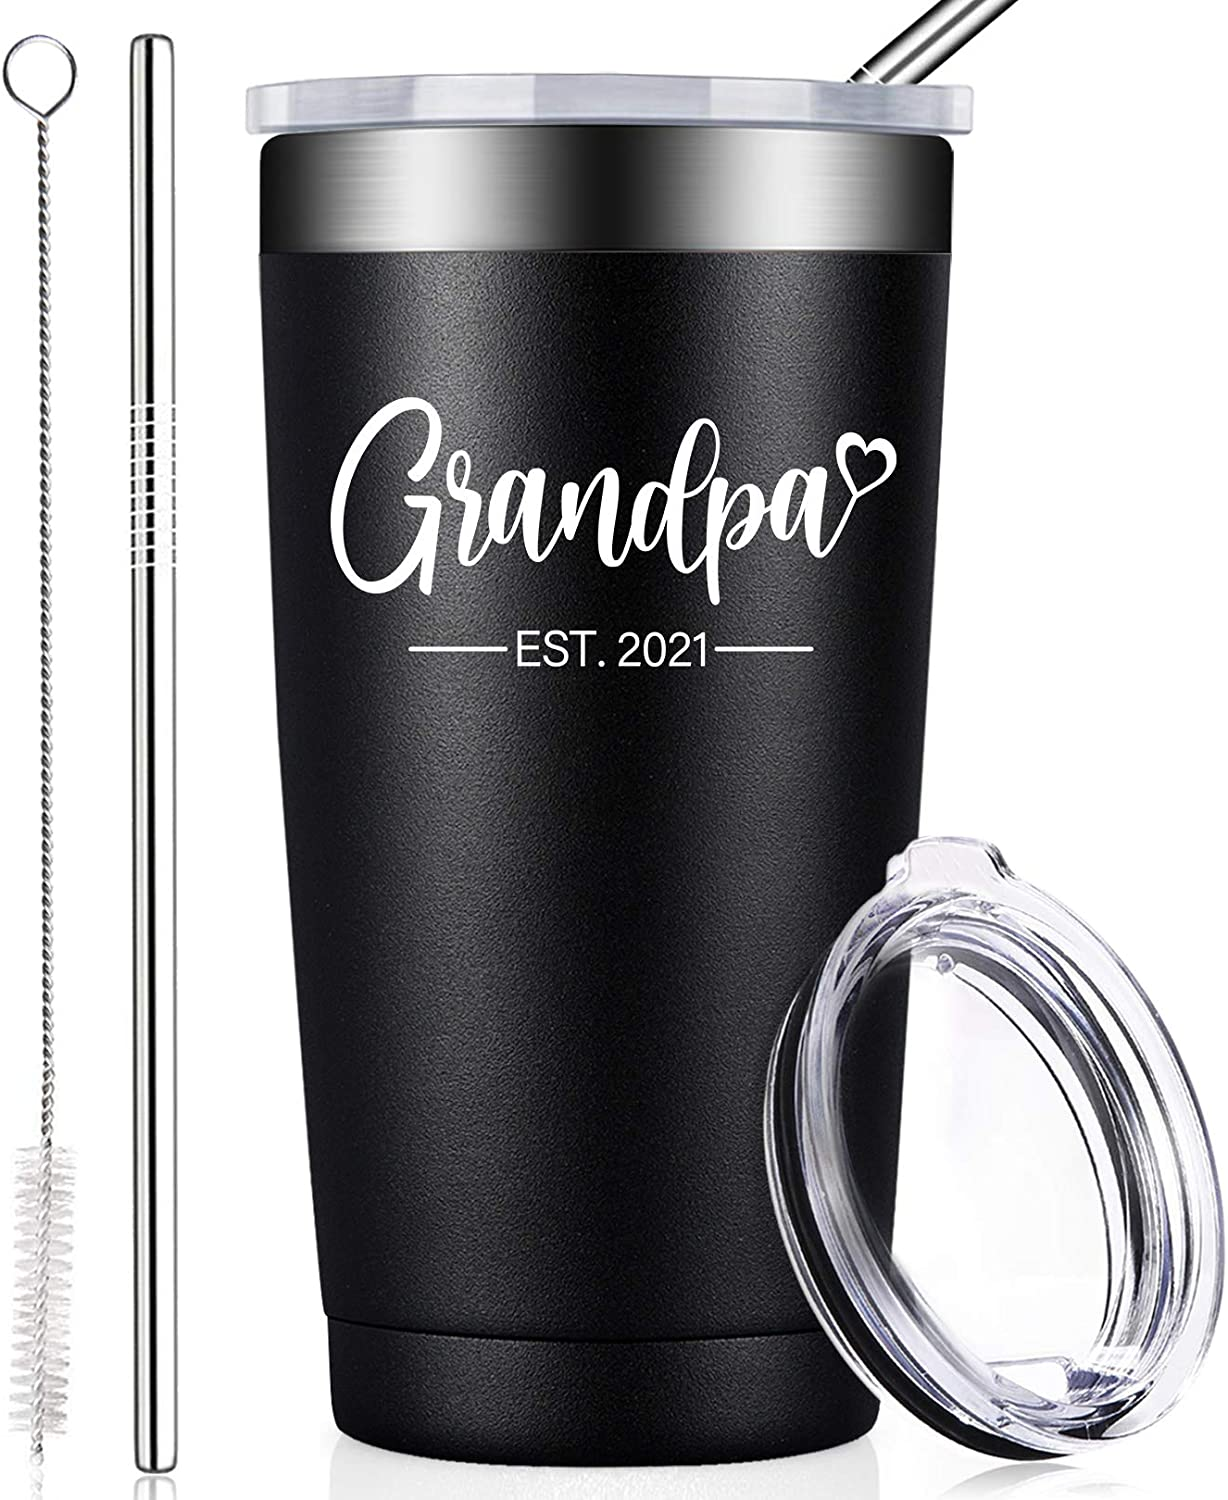 BIRGILT New Grandpas Gifts - Grandpa Est. 2021 - First Time Grandfather Gifts - Fathers Day Baby Pregnancy Christmas Presents from Daughter Son - Tumbler Cup 20oz